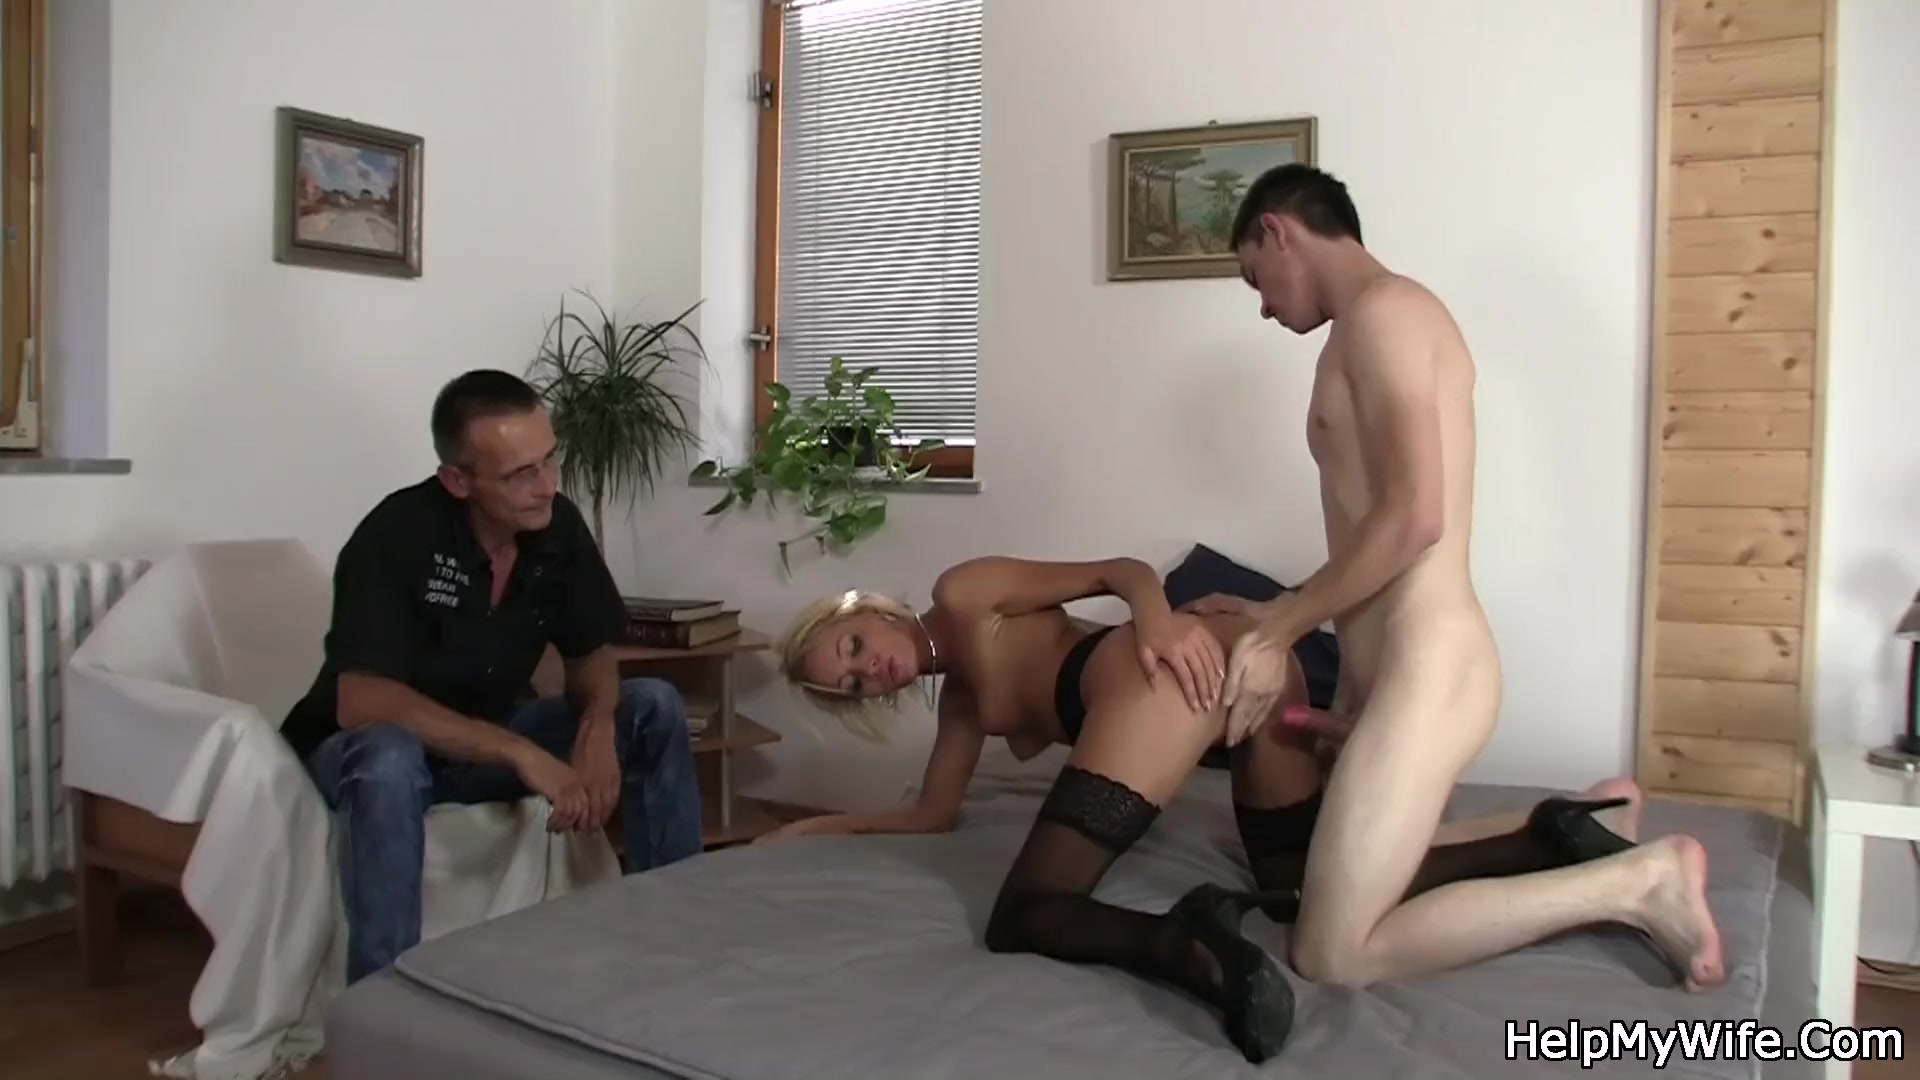 Young hot guys fucking